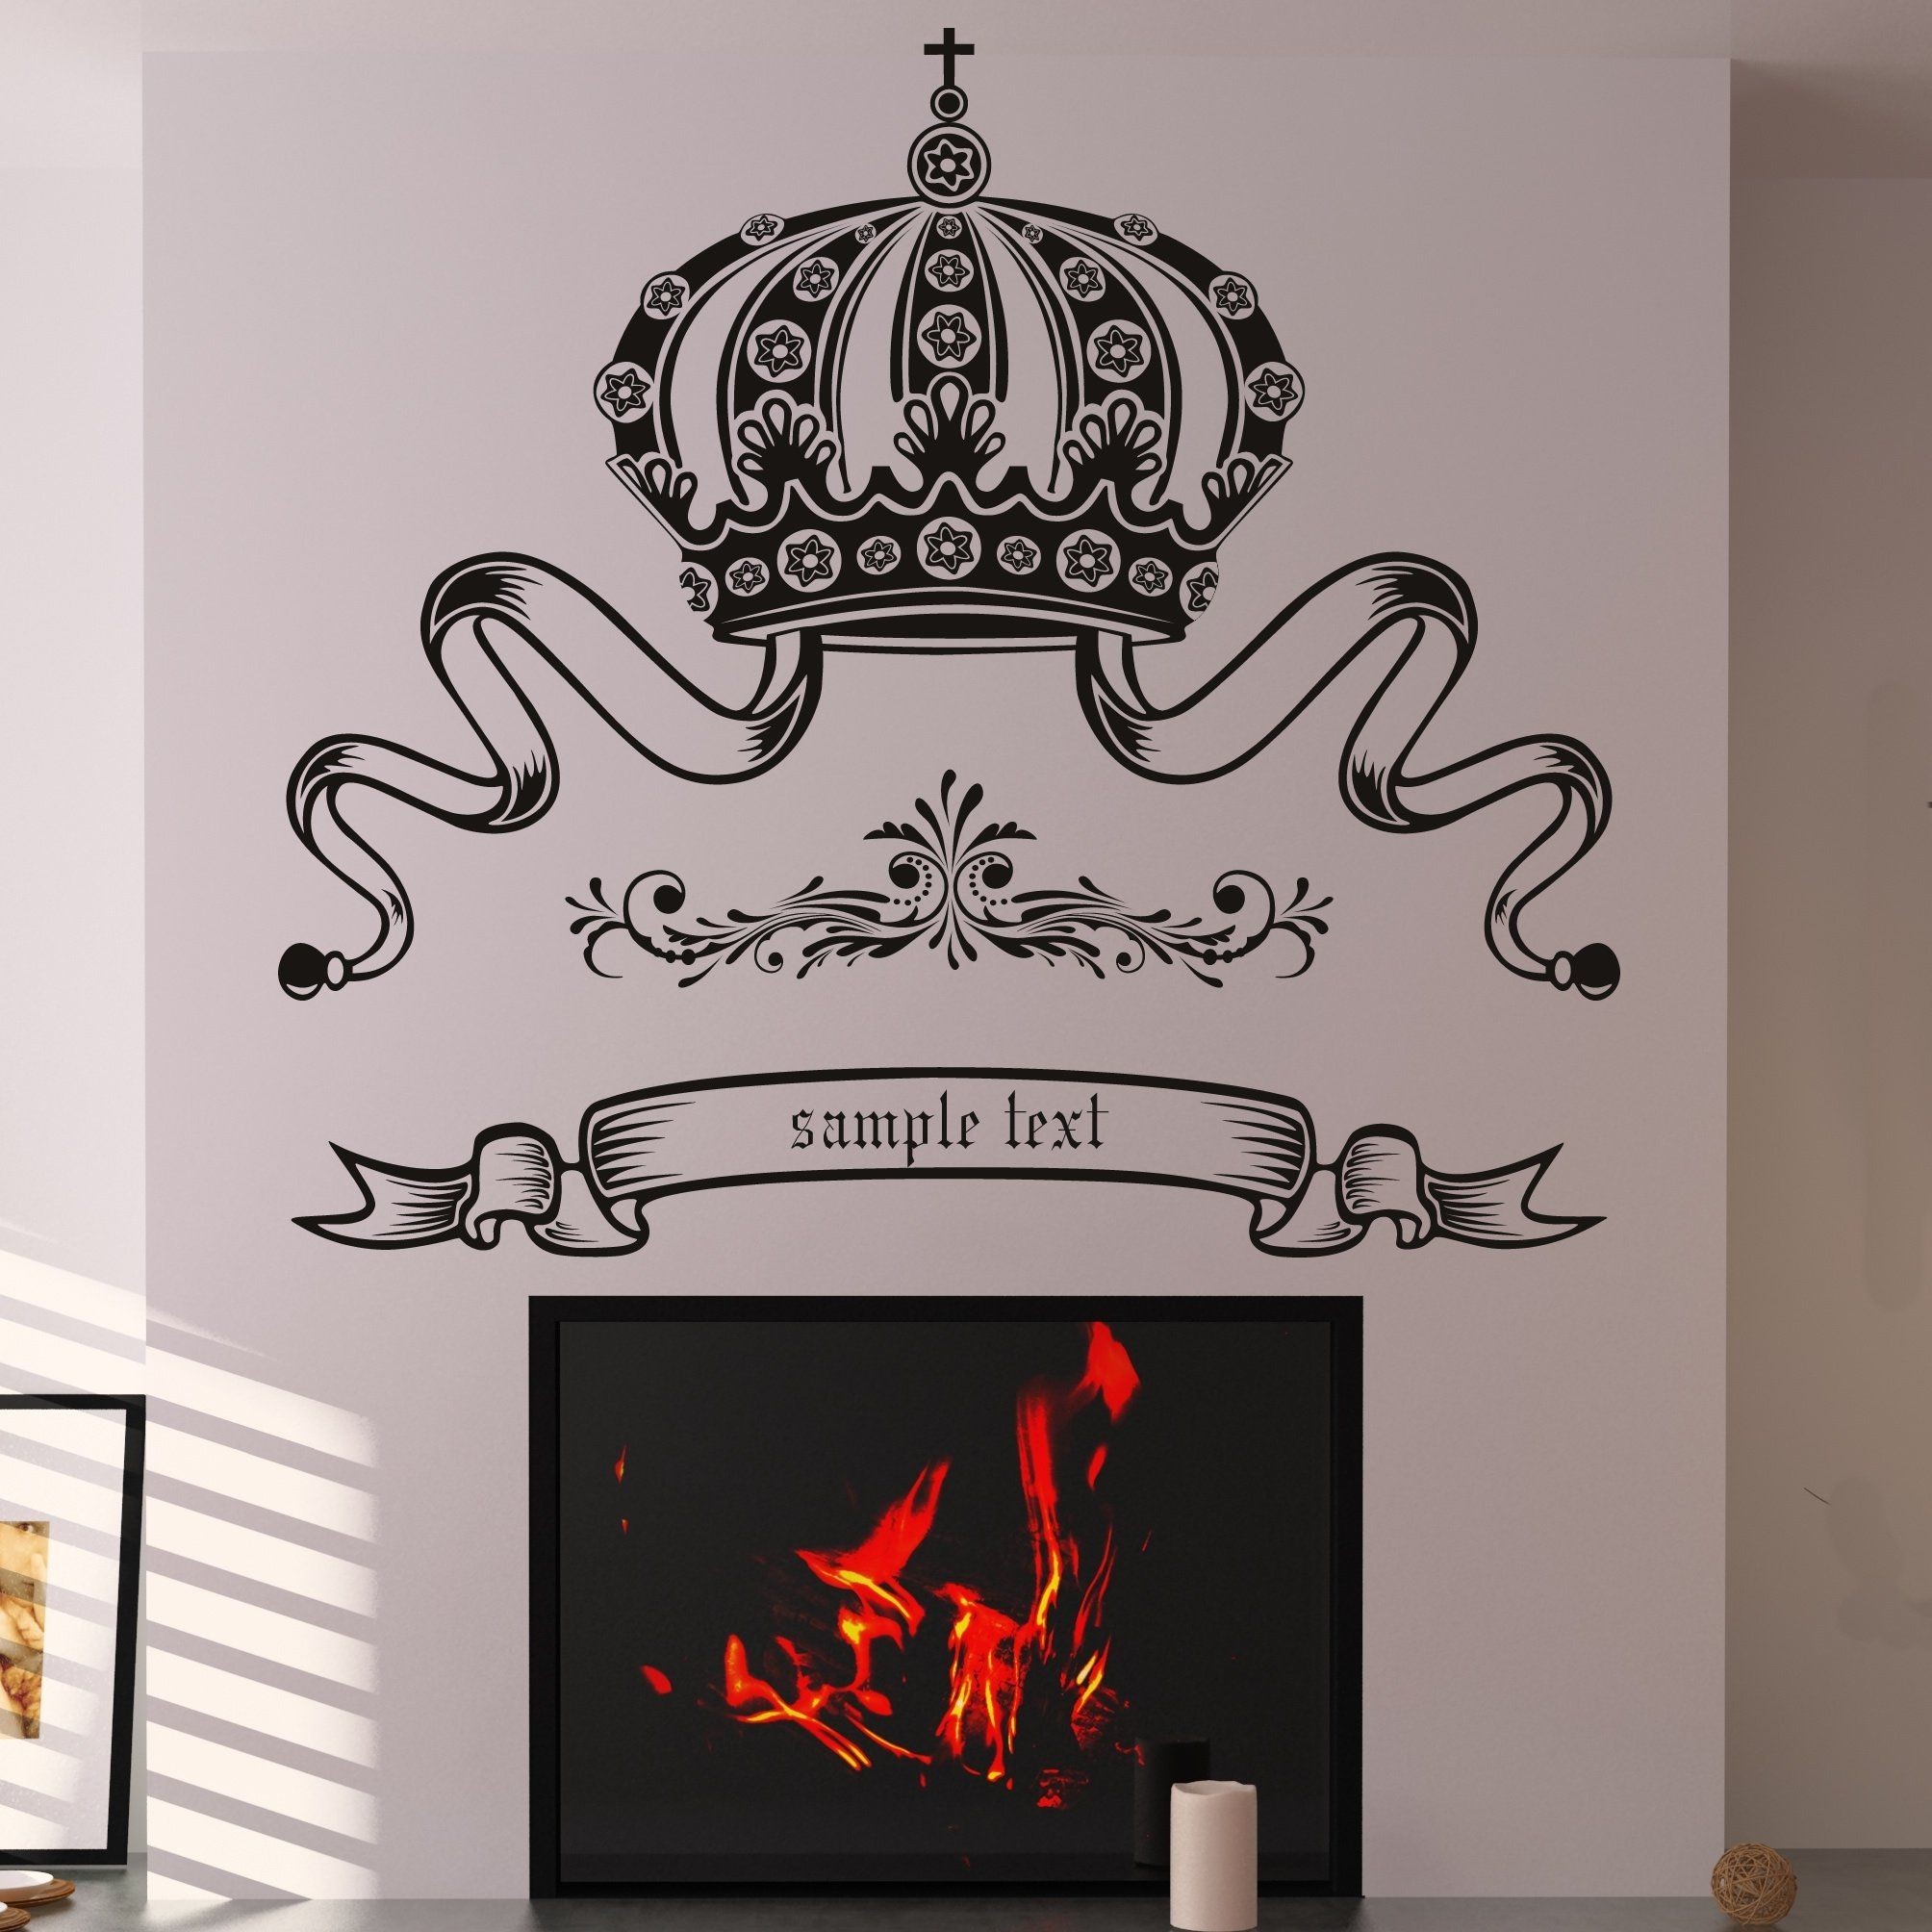 Customised wall stickers singapore monogram decals custom guitar customised wall stickers singapore monogram decals custom guitar amipublicfo Image collections